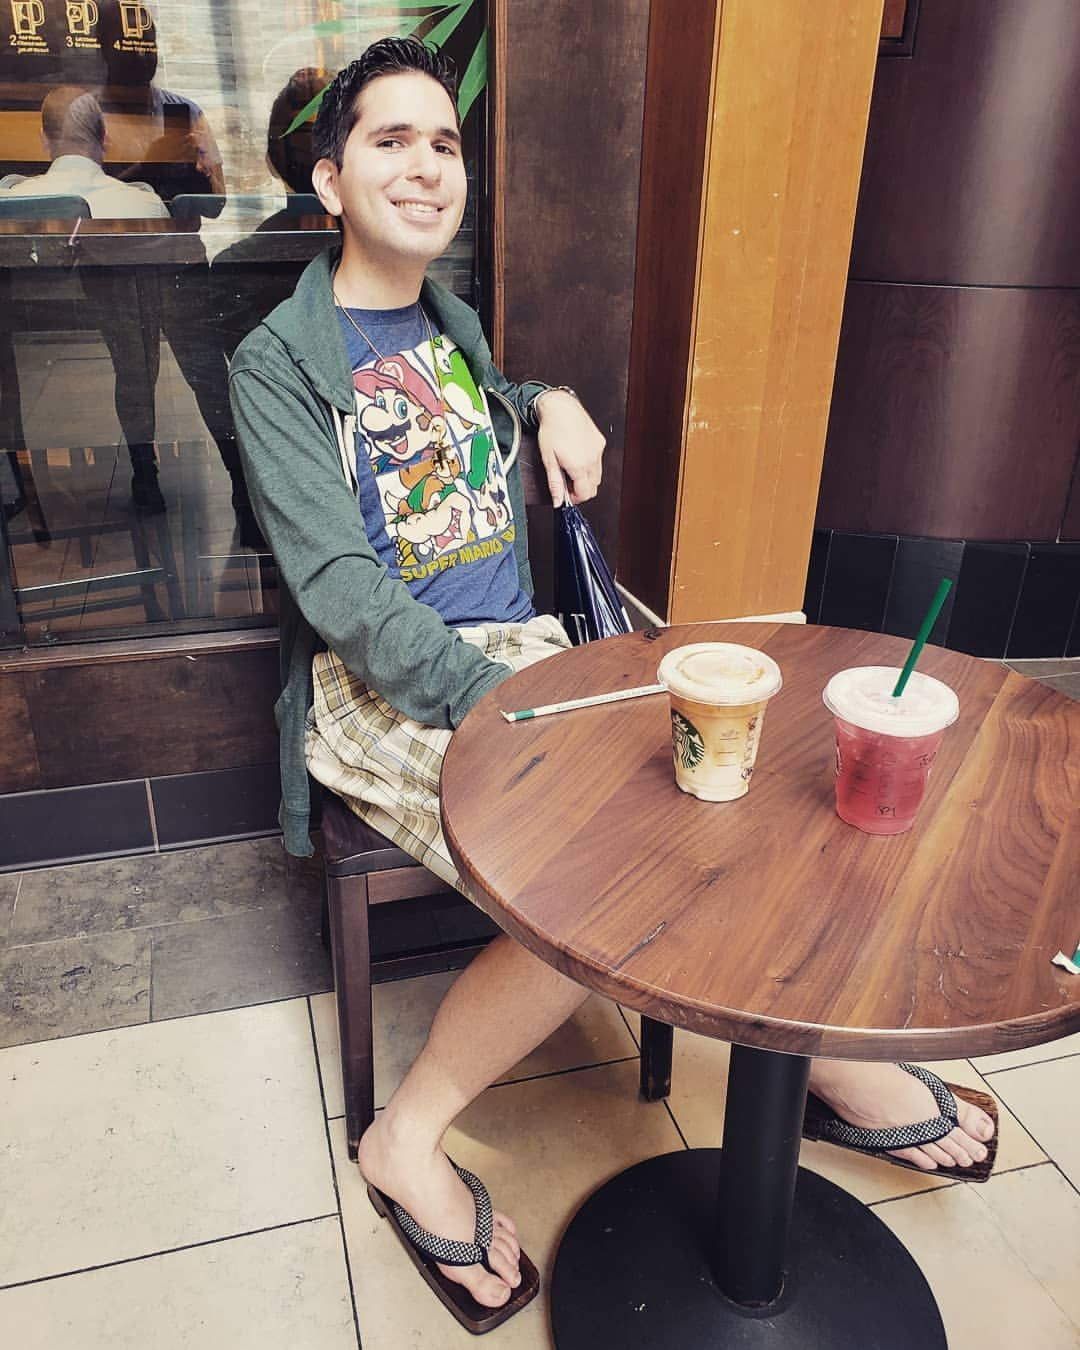 I Went To Starbucks At The Mall With One Of My Best